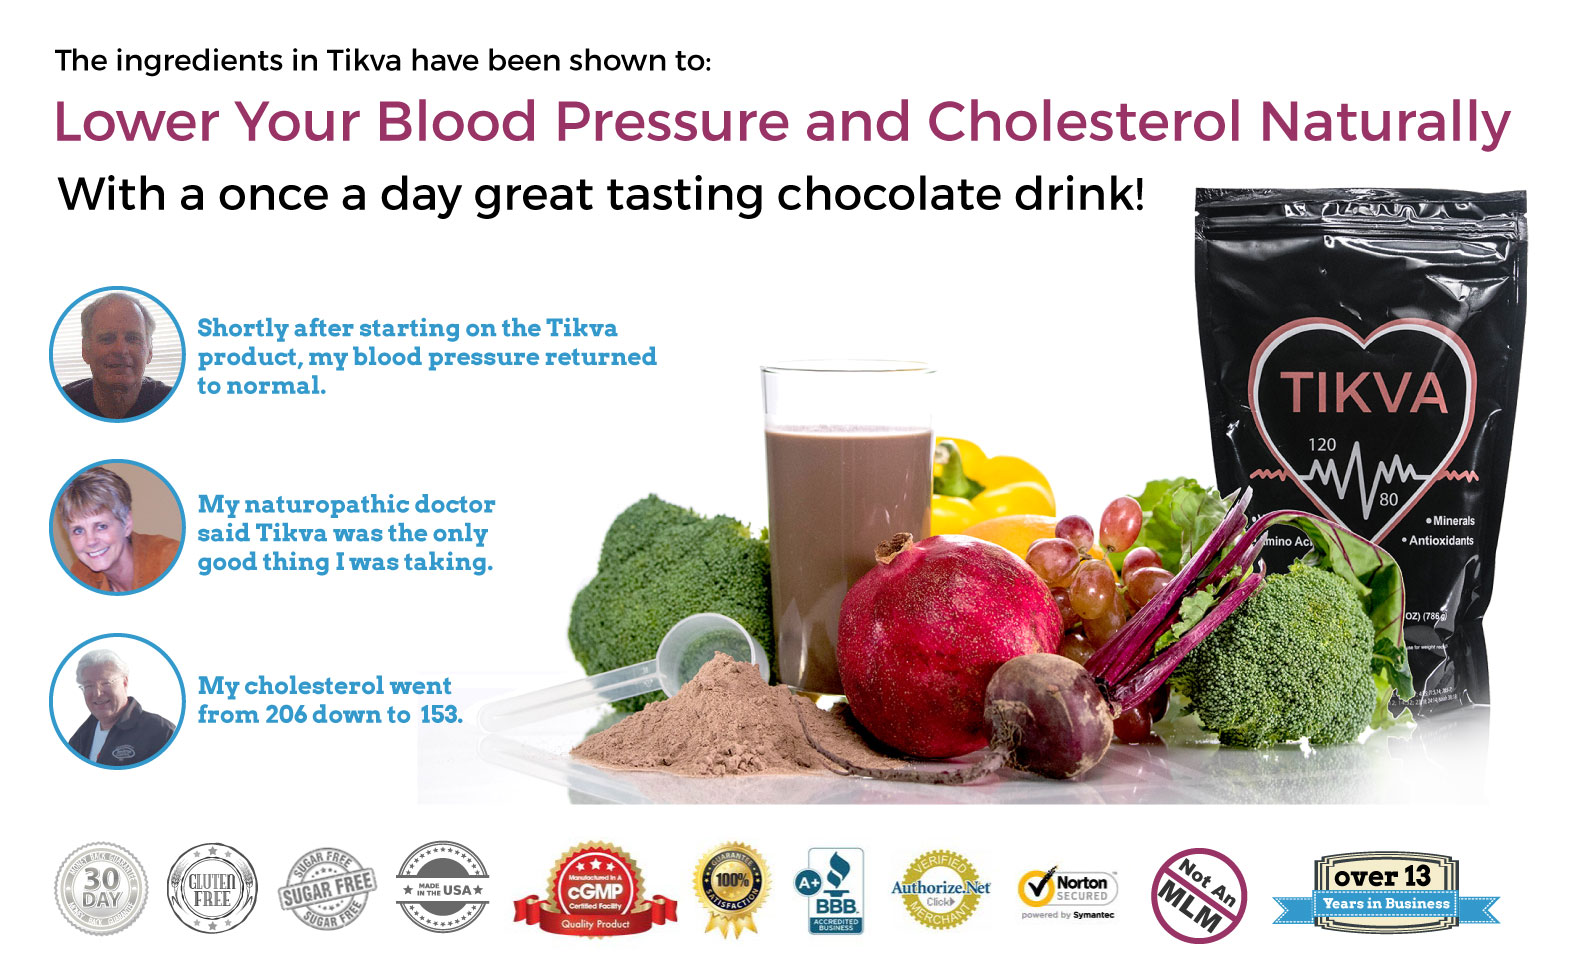 Tikva - Naturally Lower Your Blood Pressure And Cholesterol